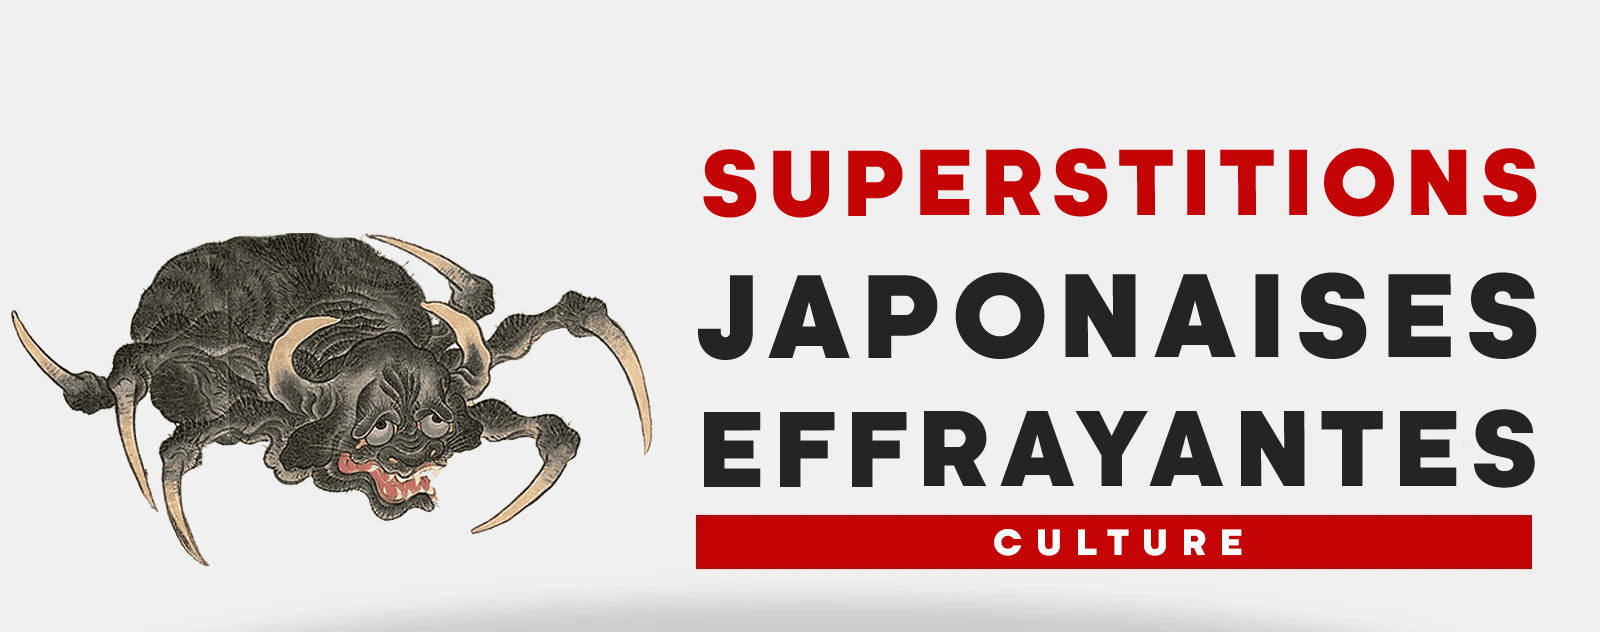 Superstitions Japonaises Effrayantes